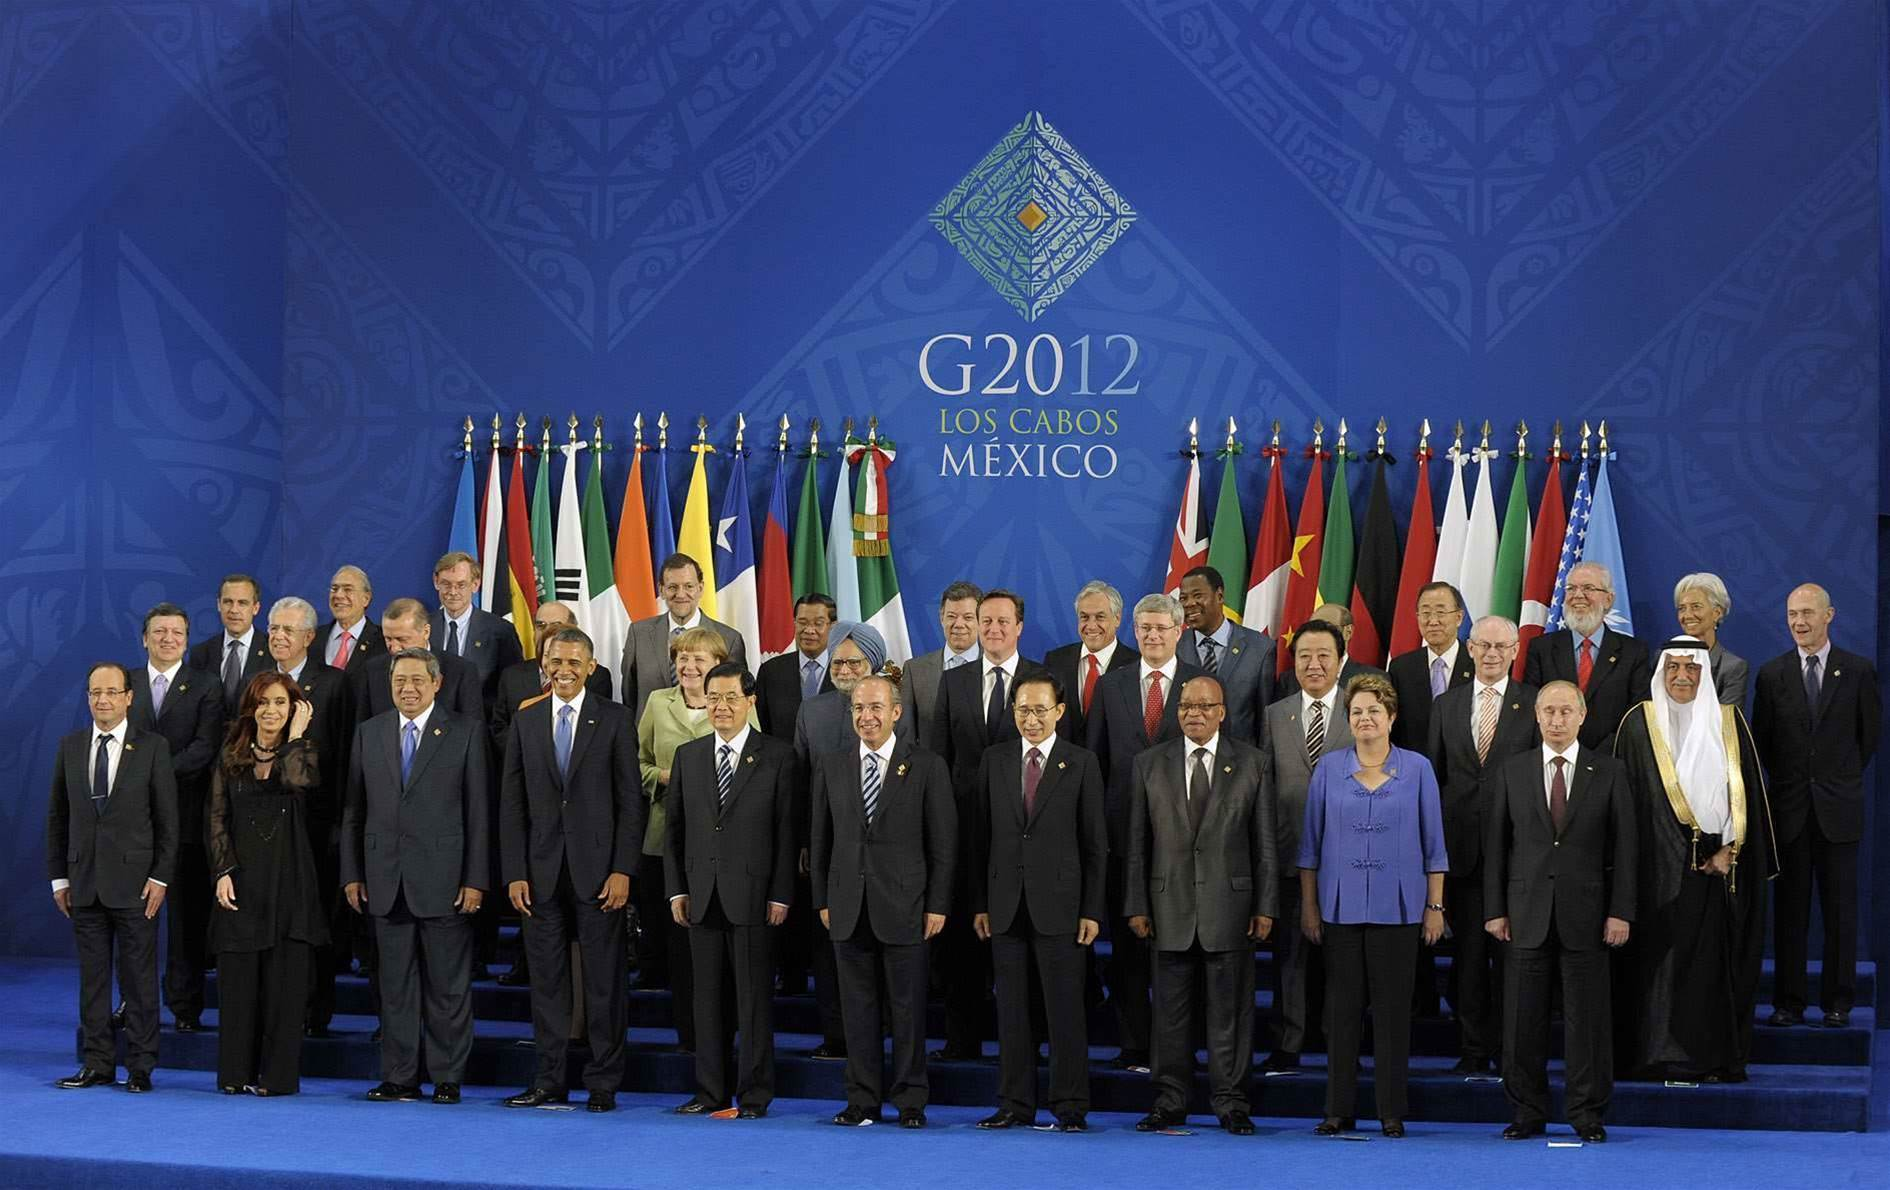 Govt spends $17m on G20 event management system